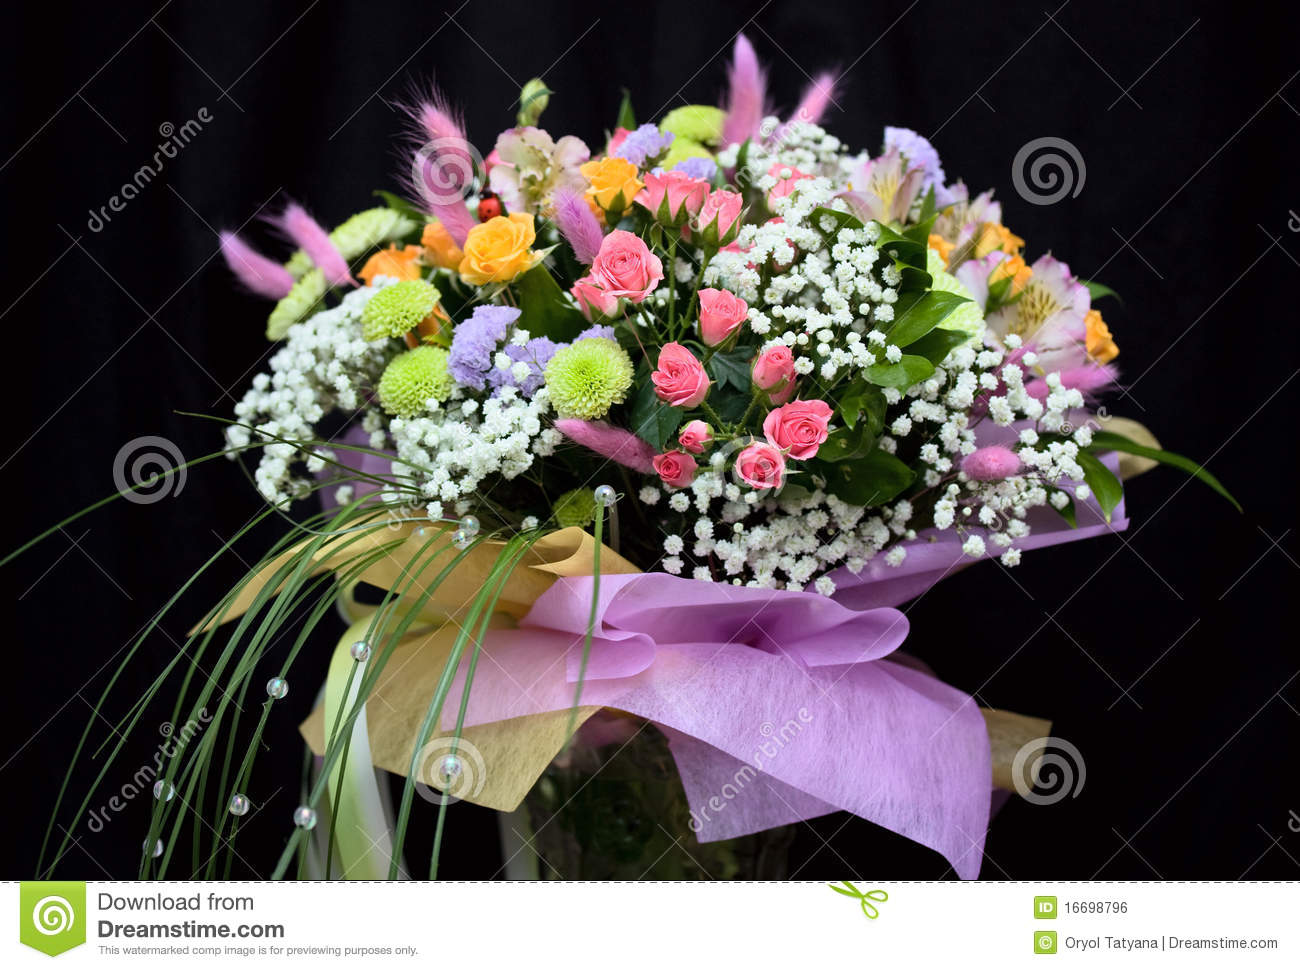 Bunch of beautiful flowers stock photo. Image of nature - 16698796